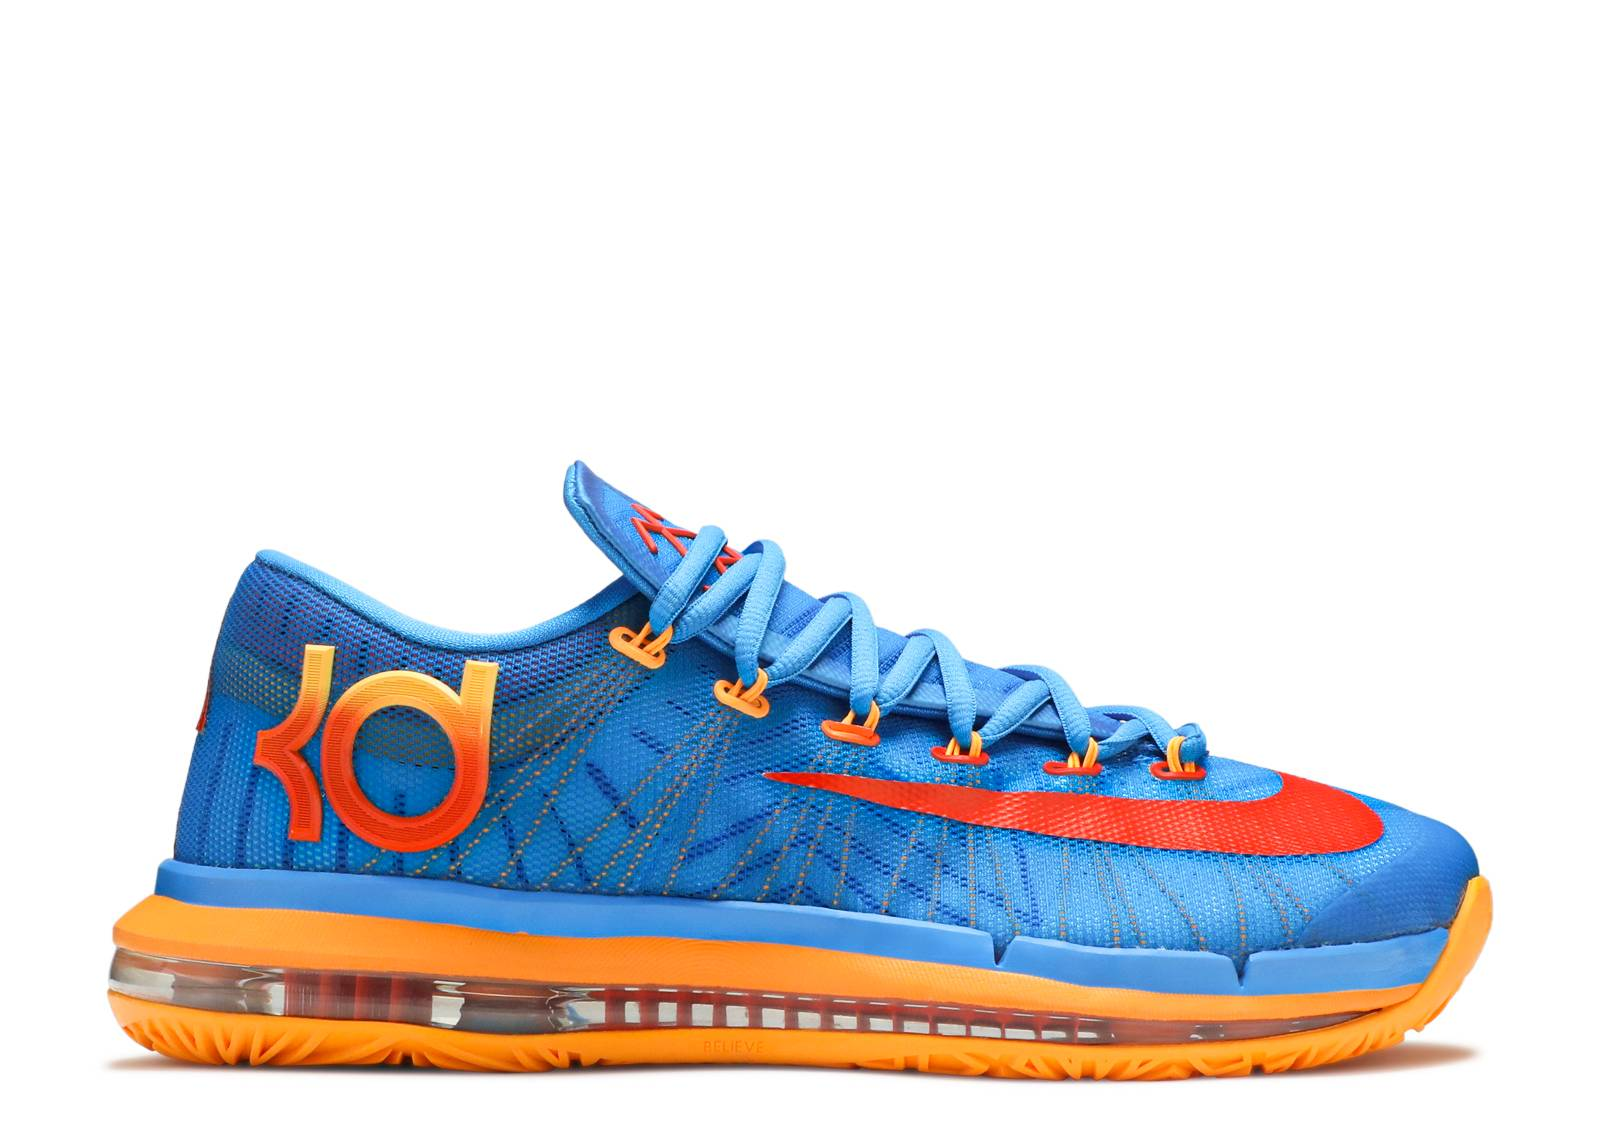 Nike Shoes Pictures Kd